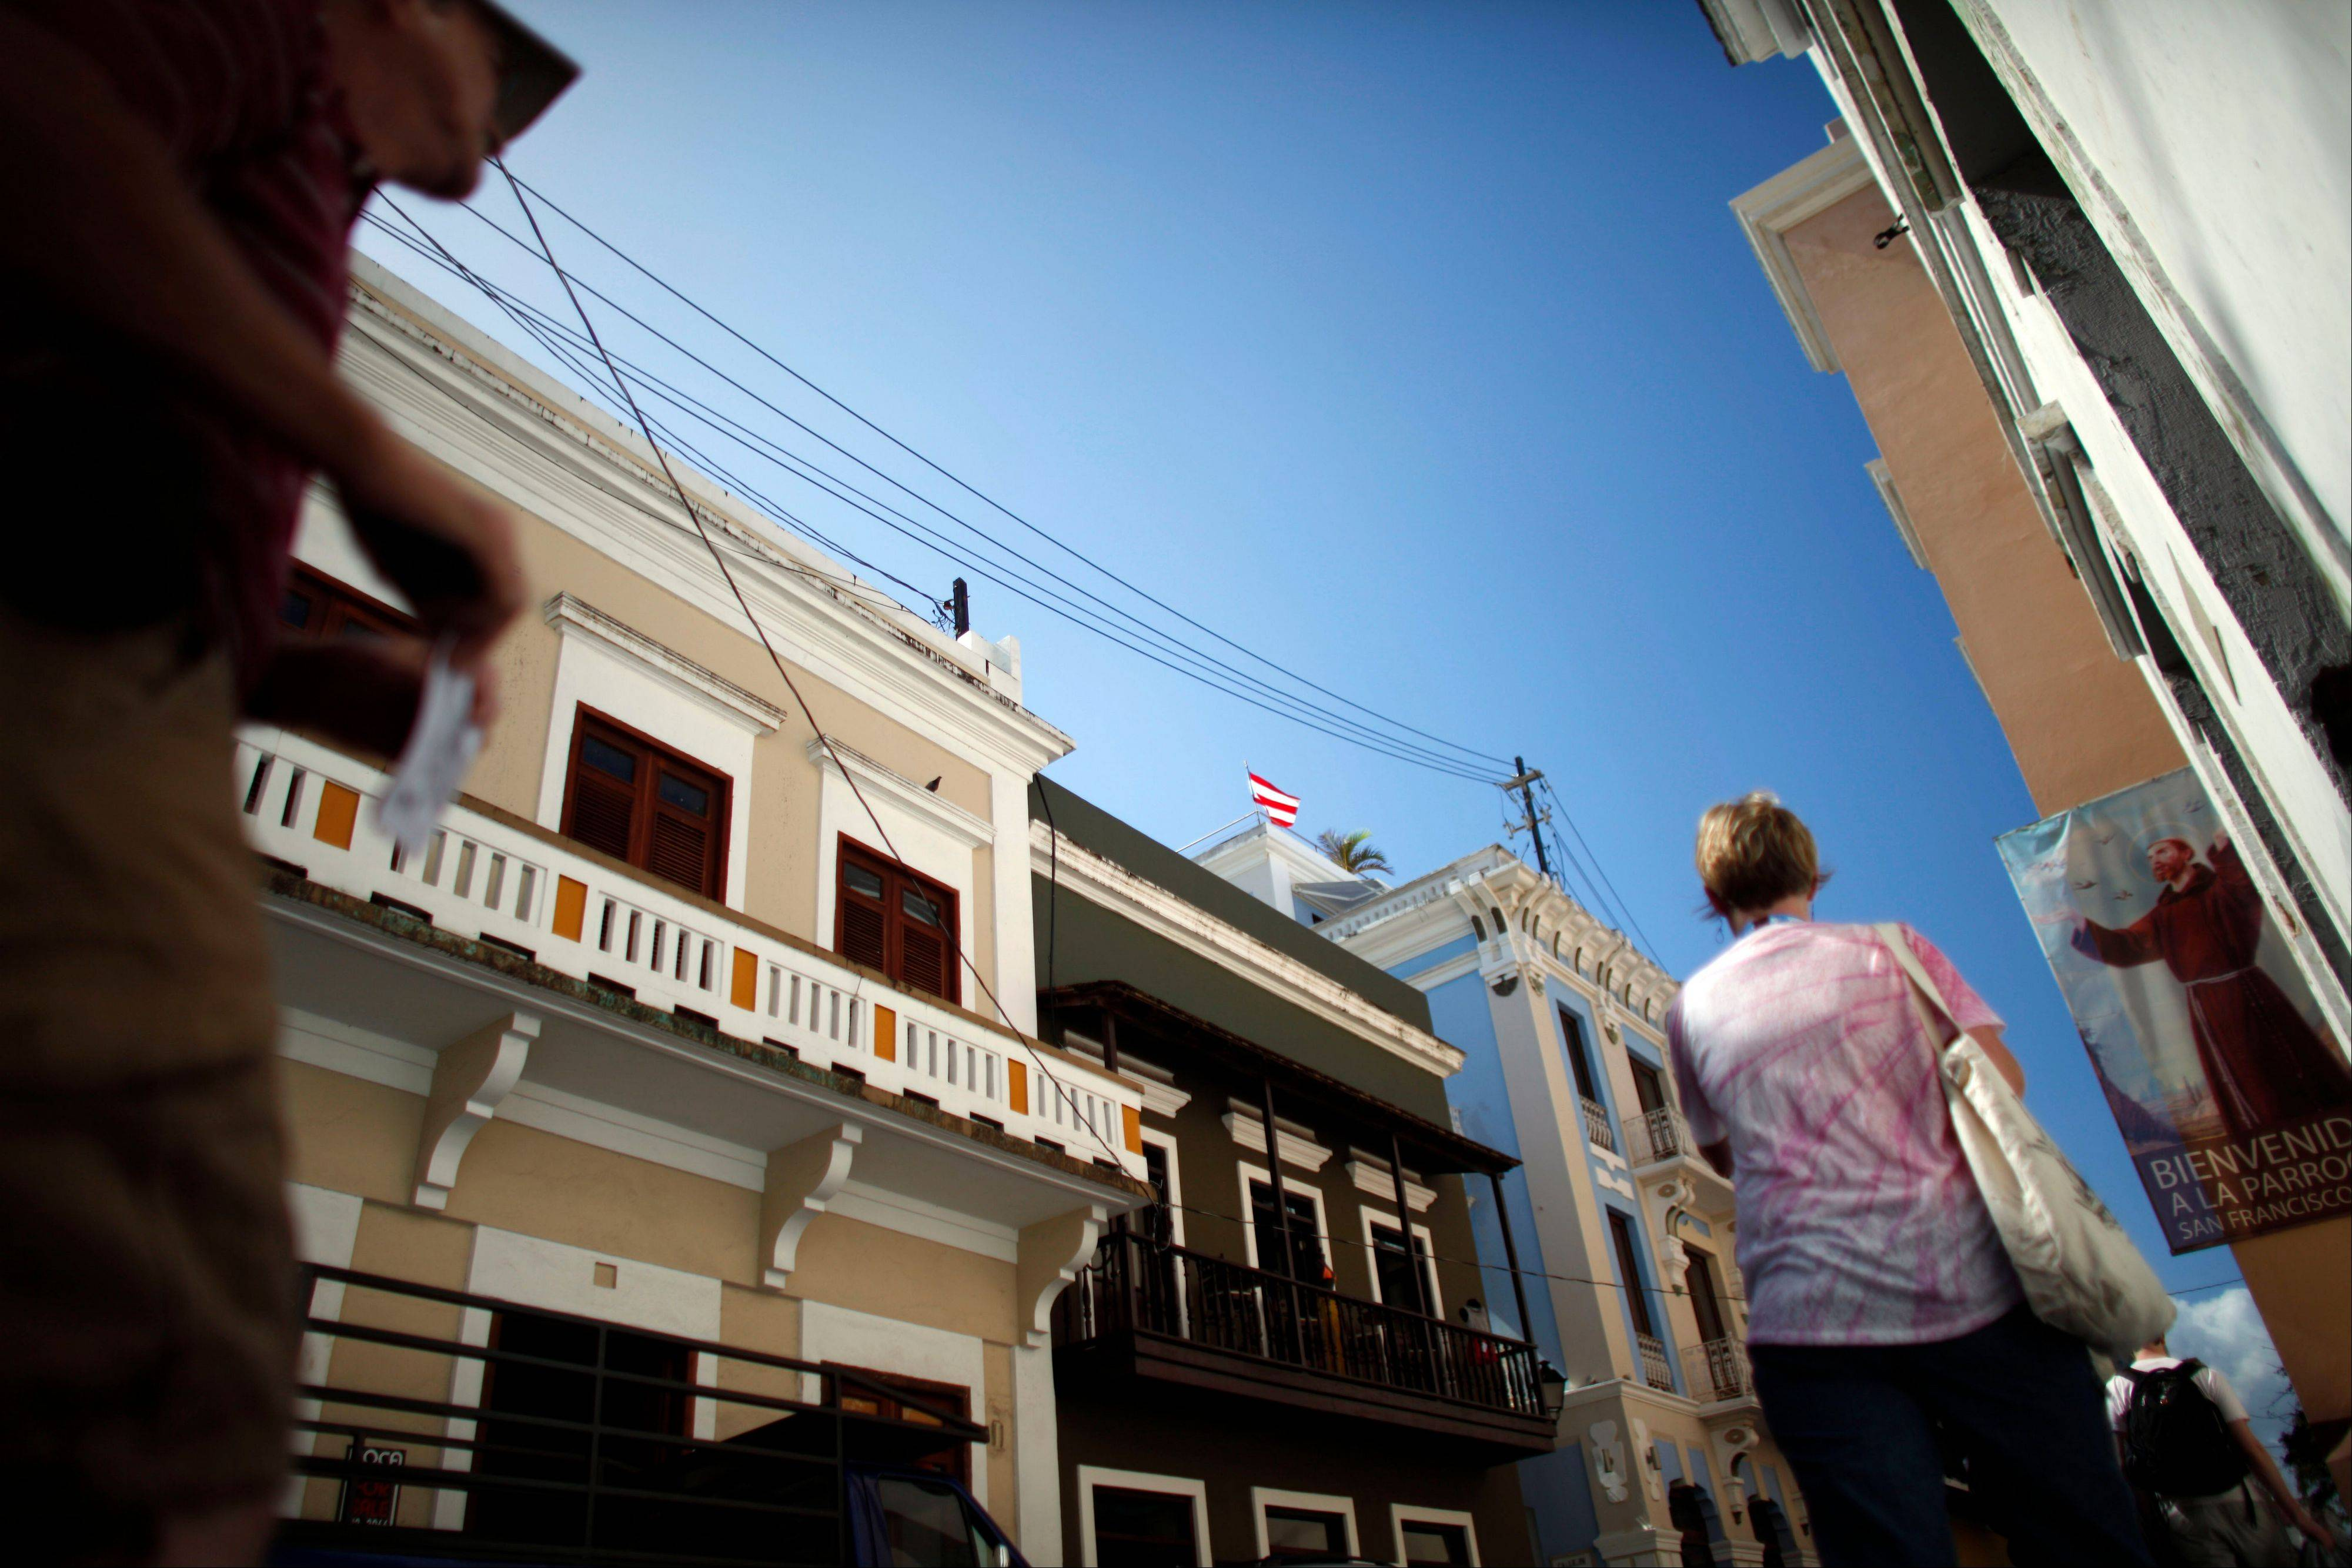 People walk in a street of the historic colonial section of San Juan named Old San Juan in Puerto Rico.